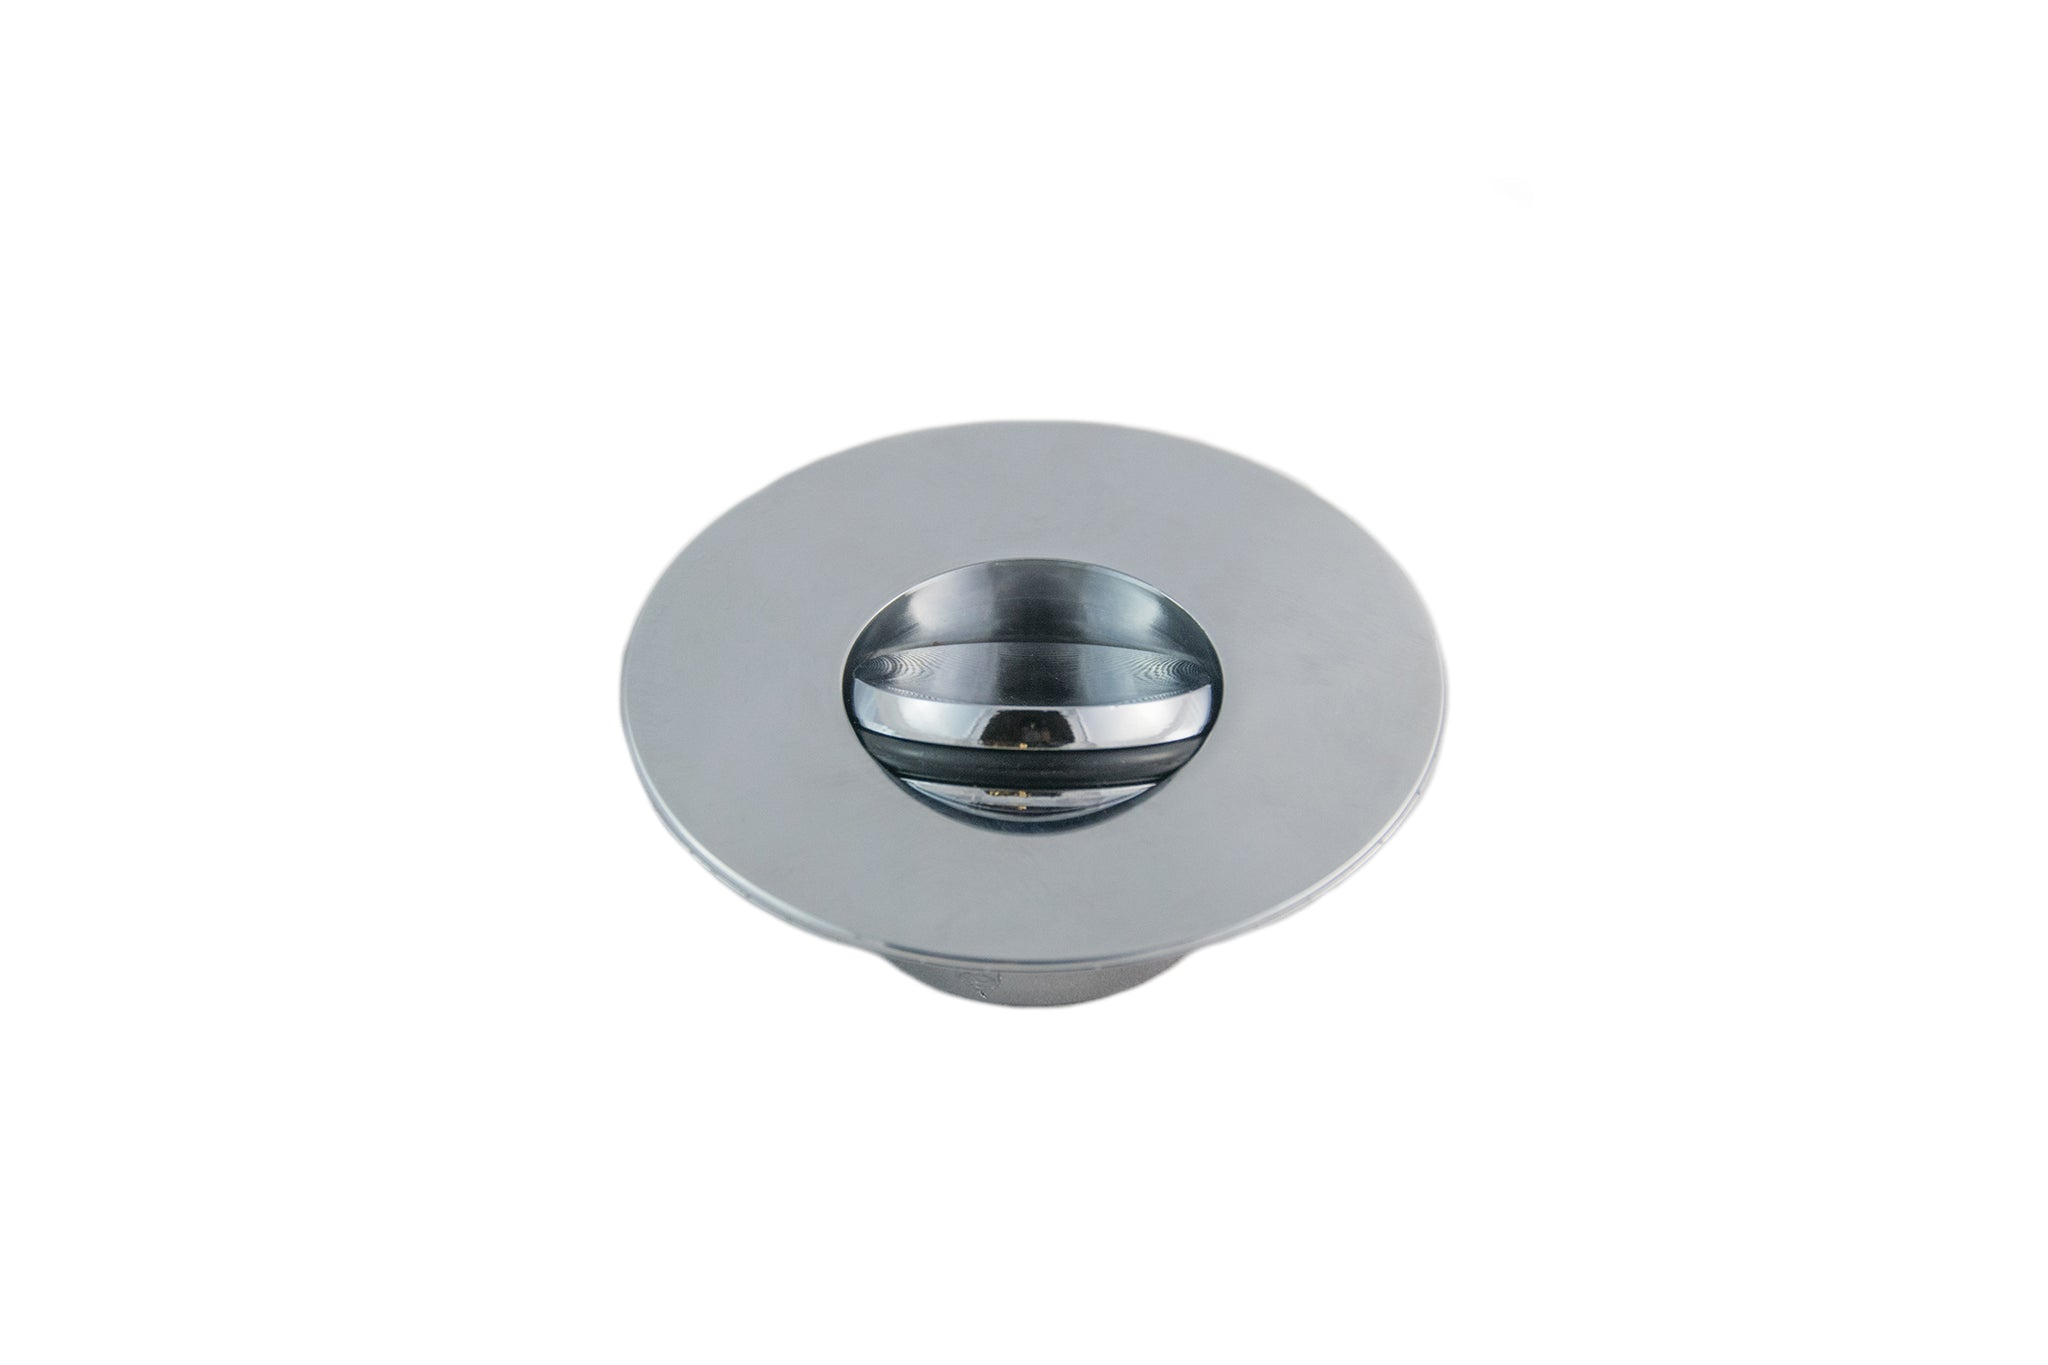 Non-Threaded Bathtub Flip-Top Drain Stopper with Snap-In Flange